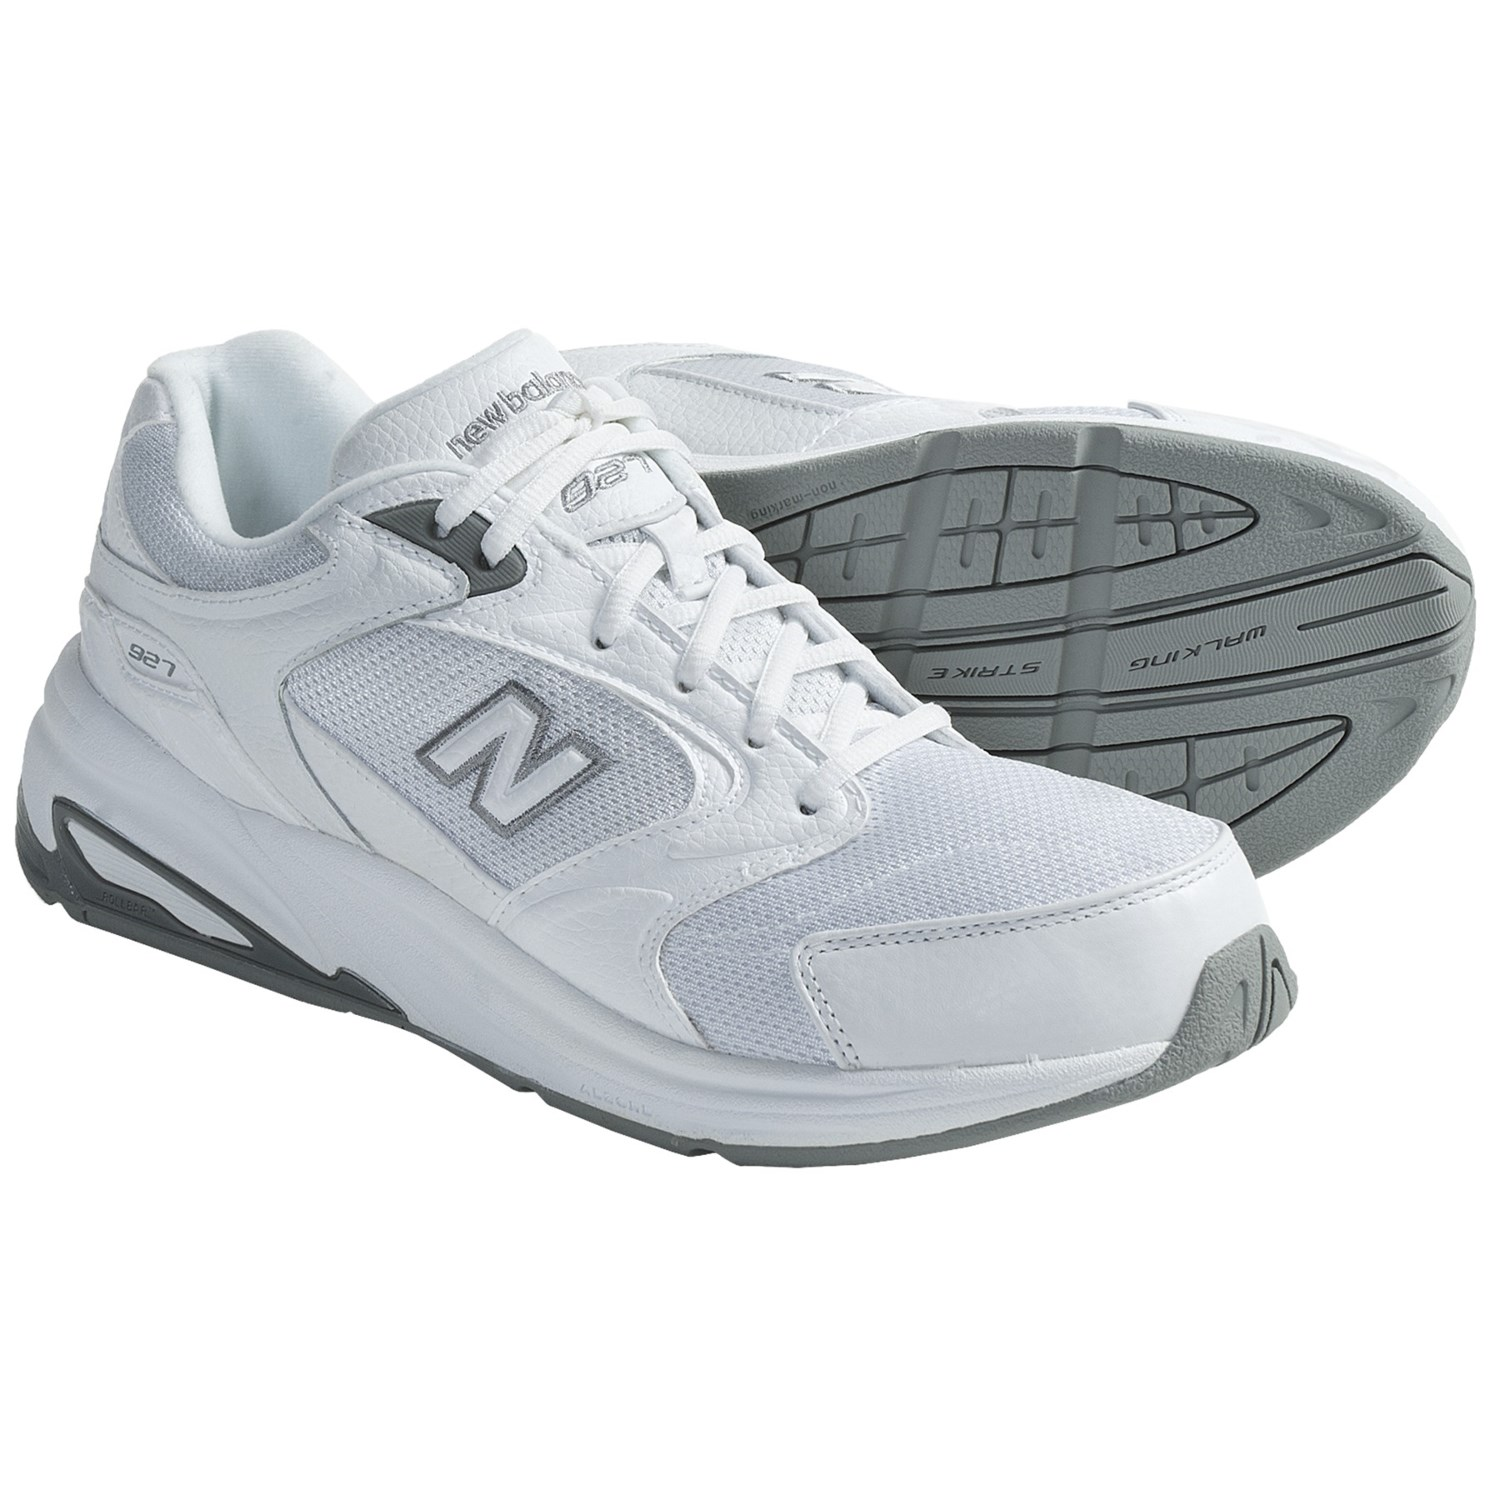 New Balance 927wt Mens New Balance Men's Mw927 Shoe